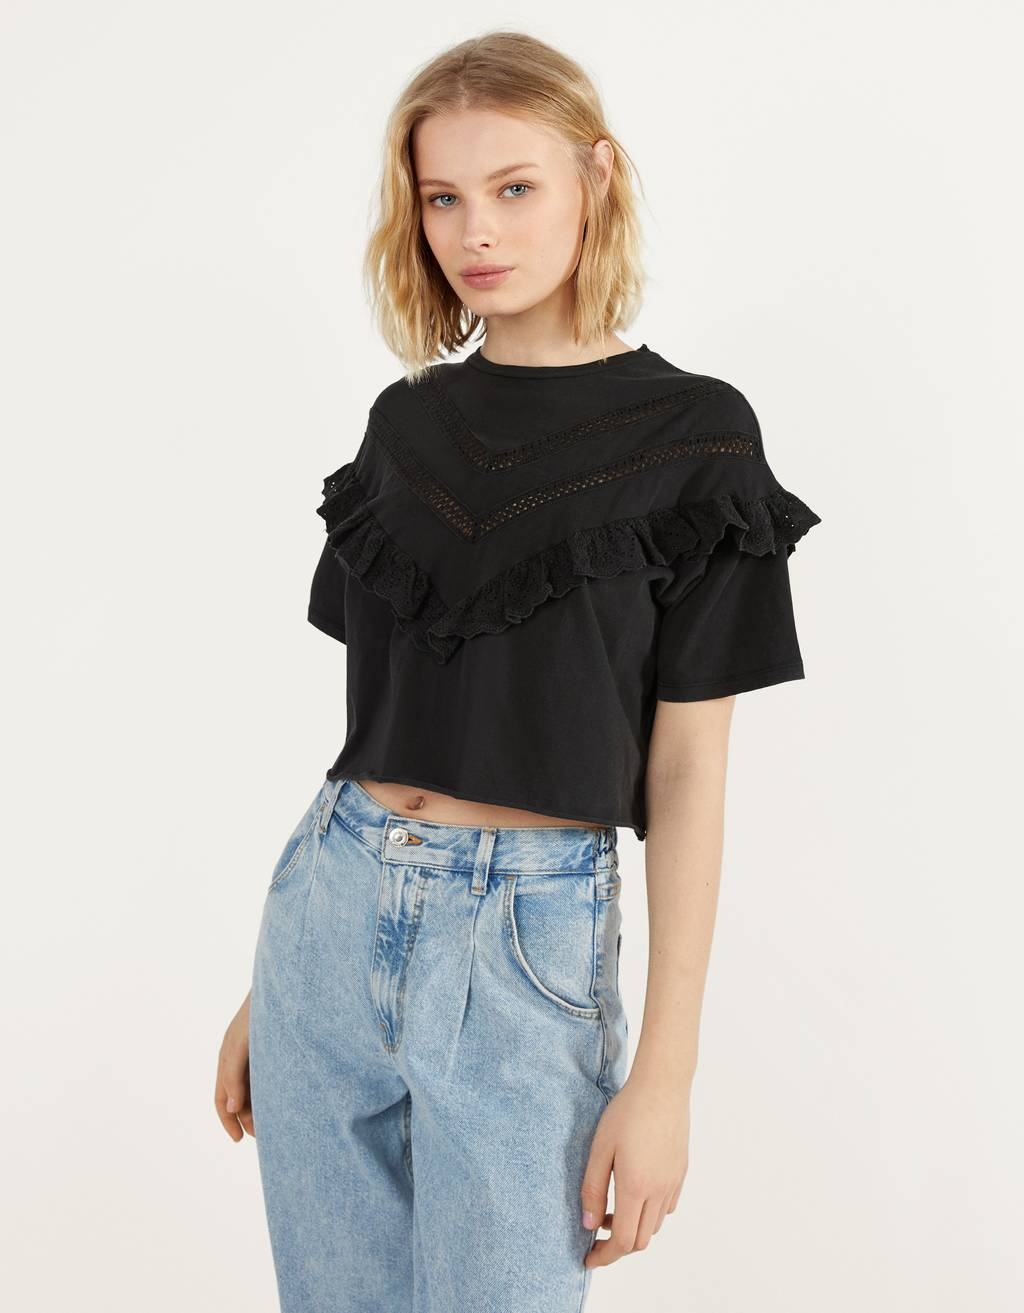 Cropped T-shirt with ruffles